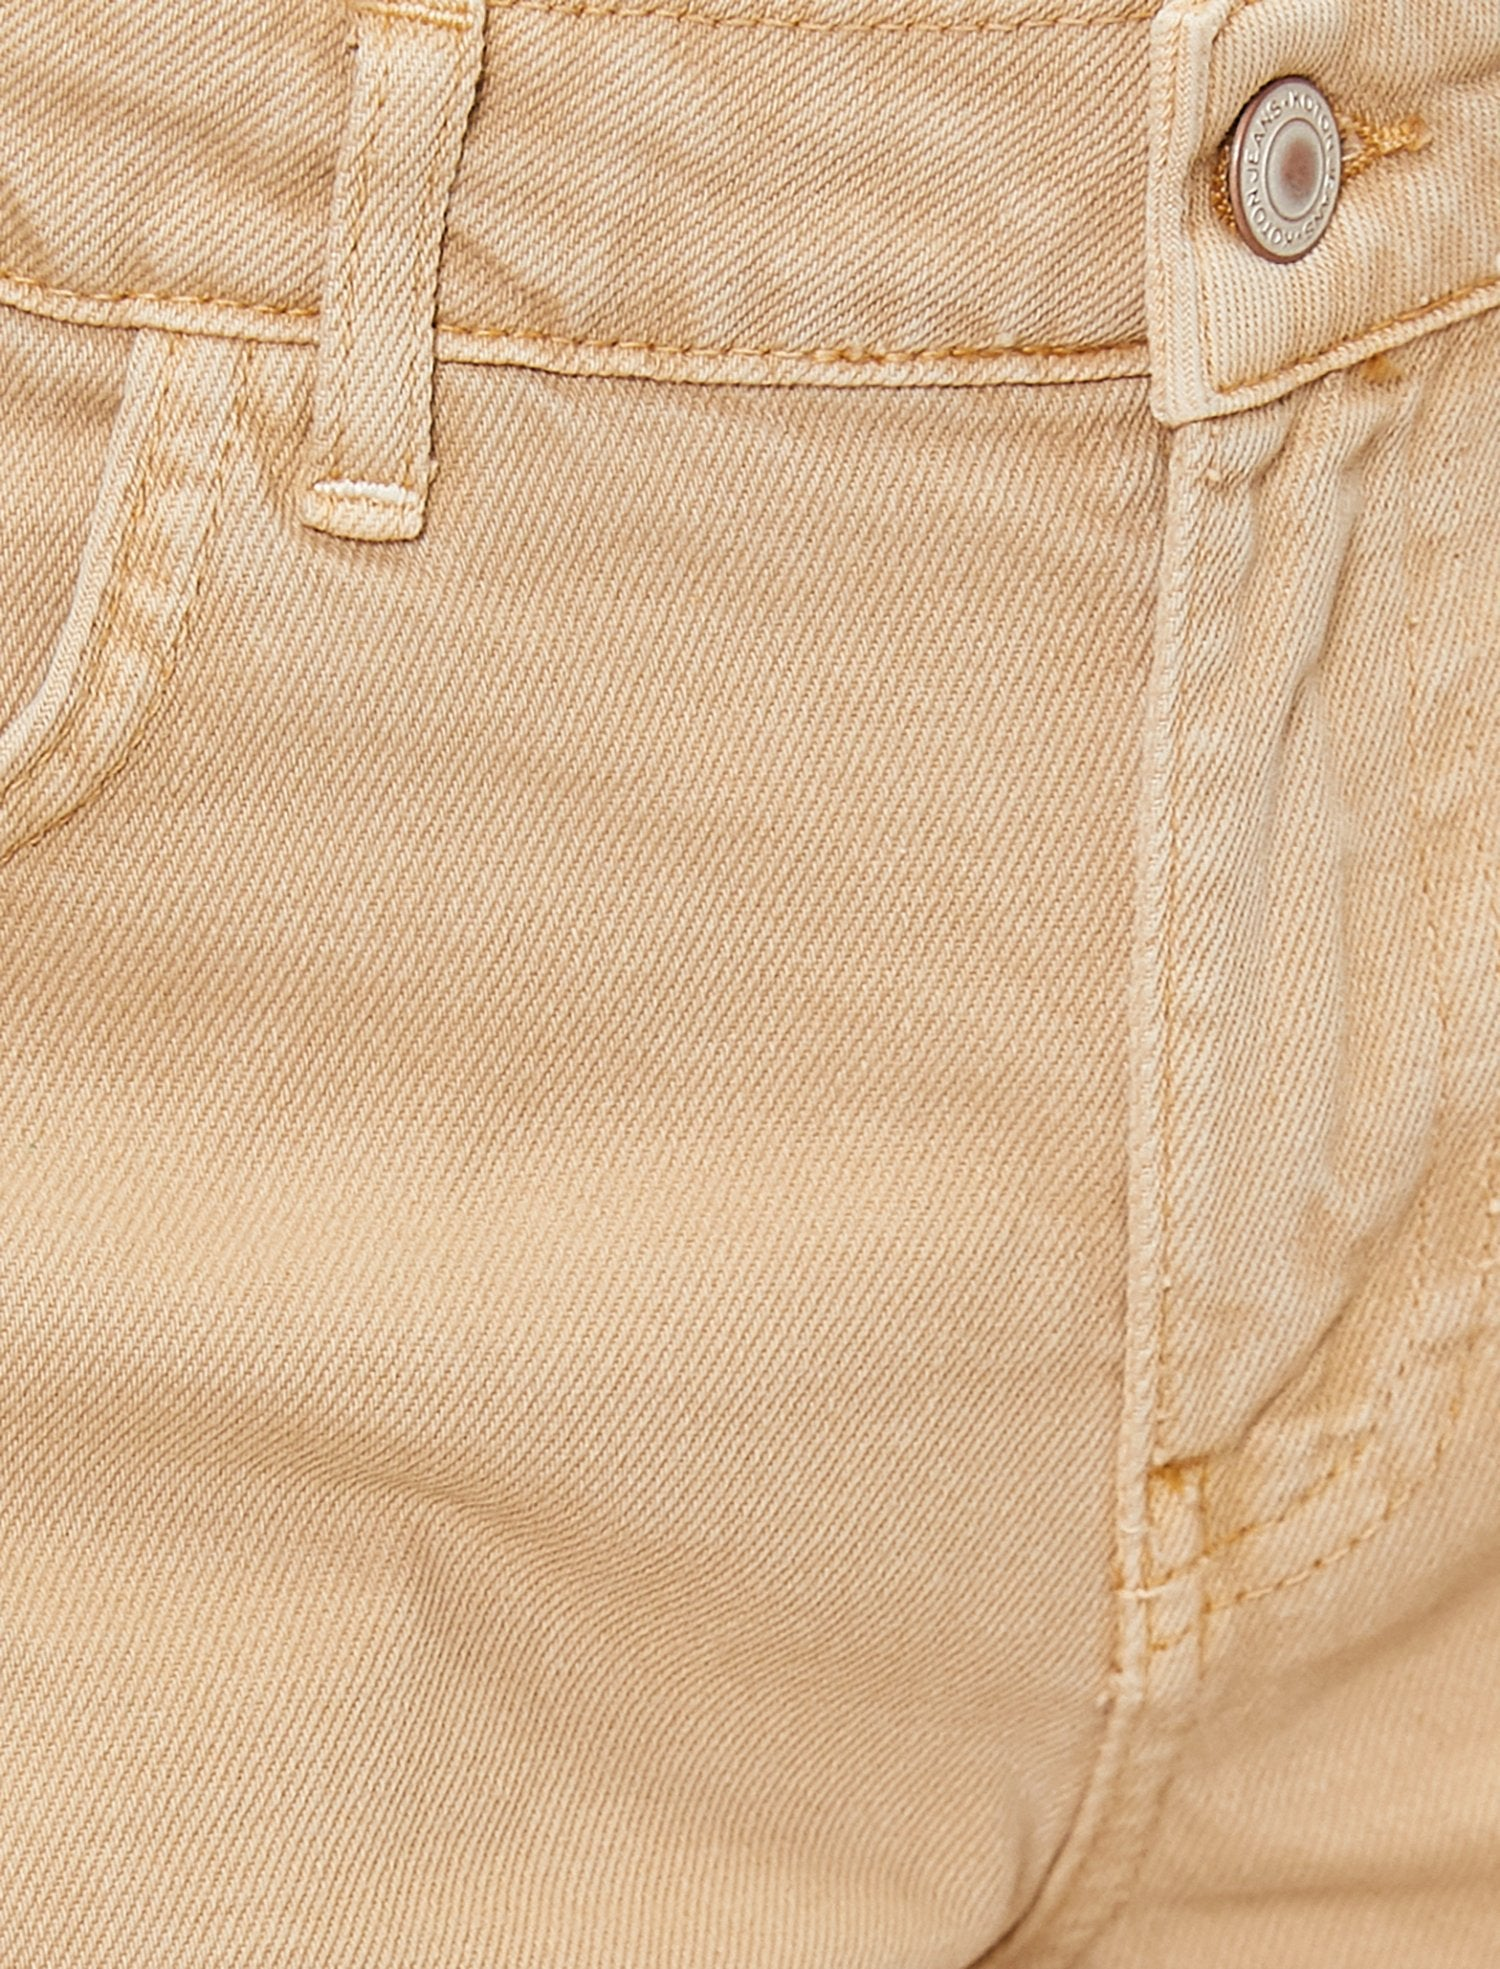 Washed Out Twill Shorts in Sand